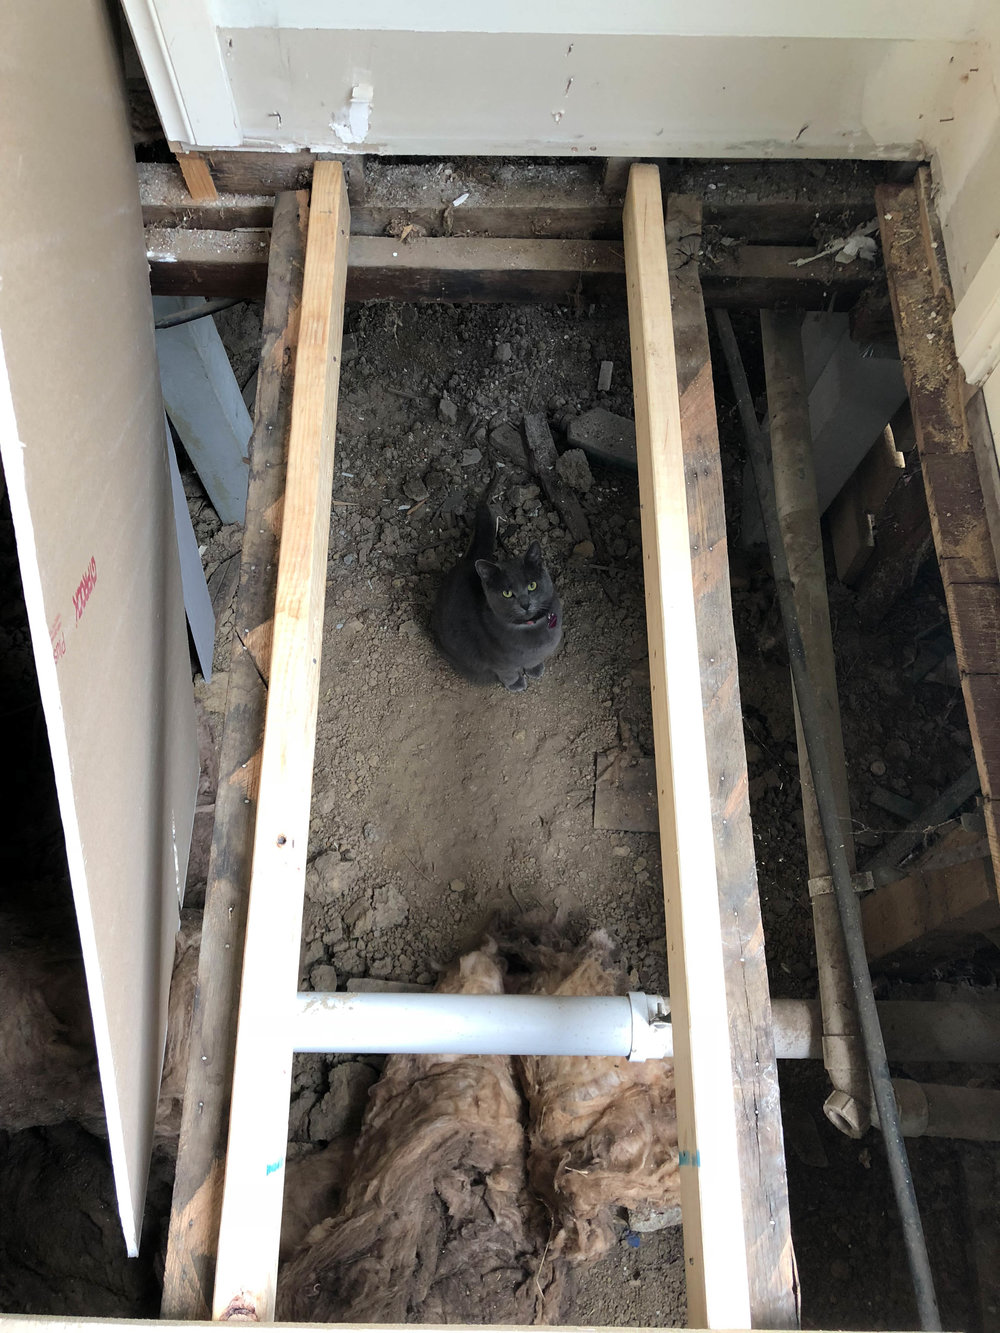 The cats LOVED have free reign underneath the house for a few nights while the floor was open!